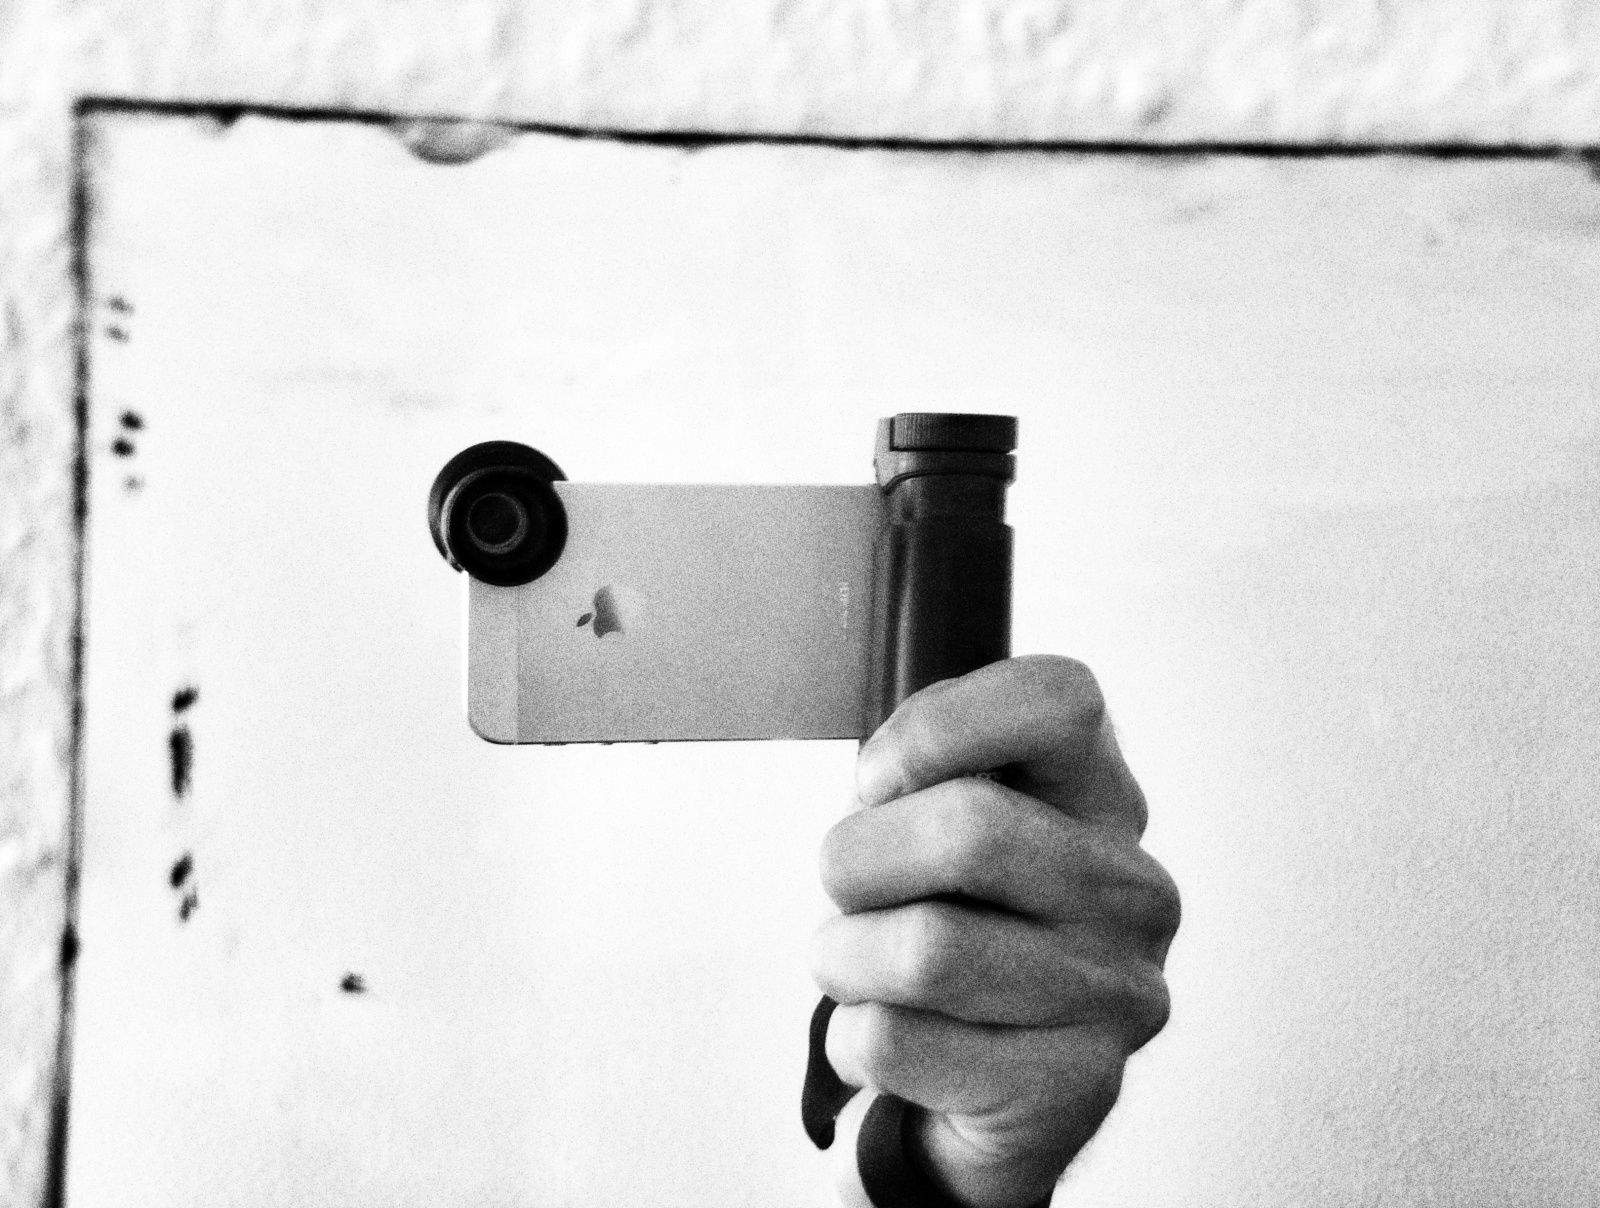 One handed-selfies are now even easier. Photos Charlie Sorrel/Cult of Mac